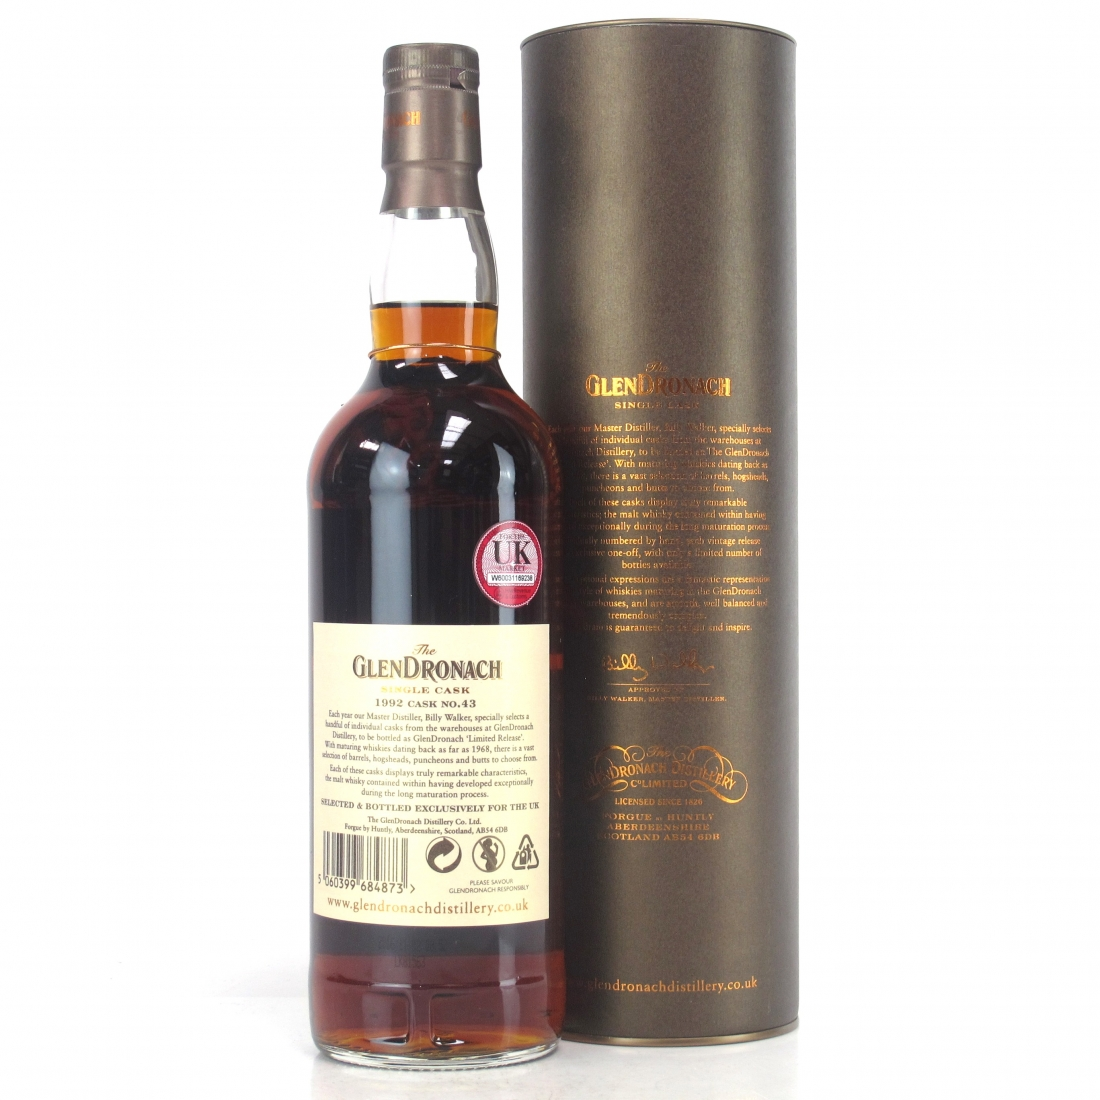 Glendronach 1992 Single Cask 24 Year Old #43 / UK Exclusive